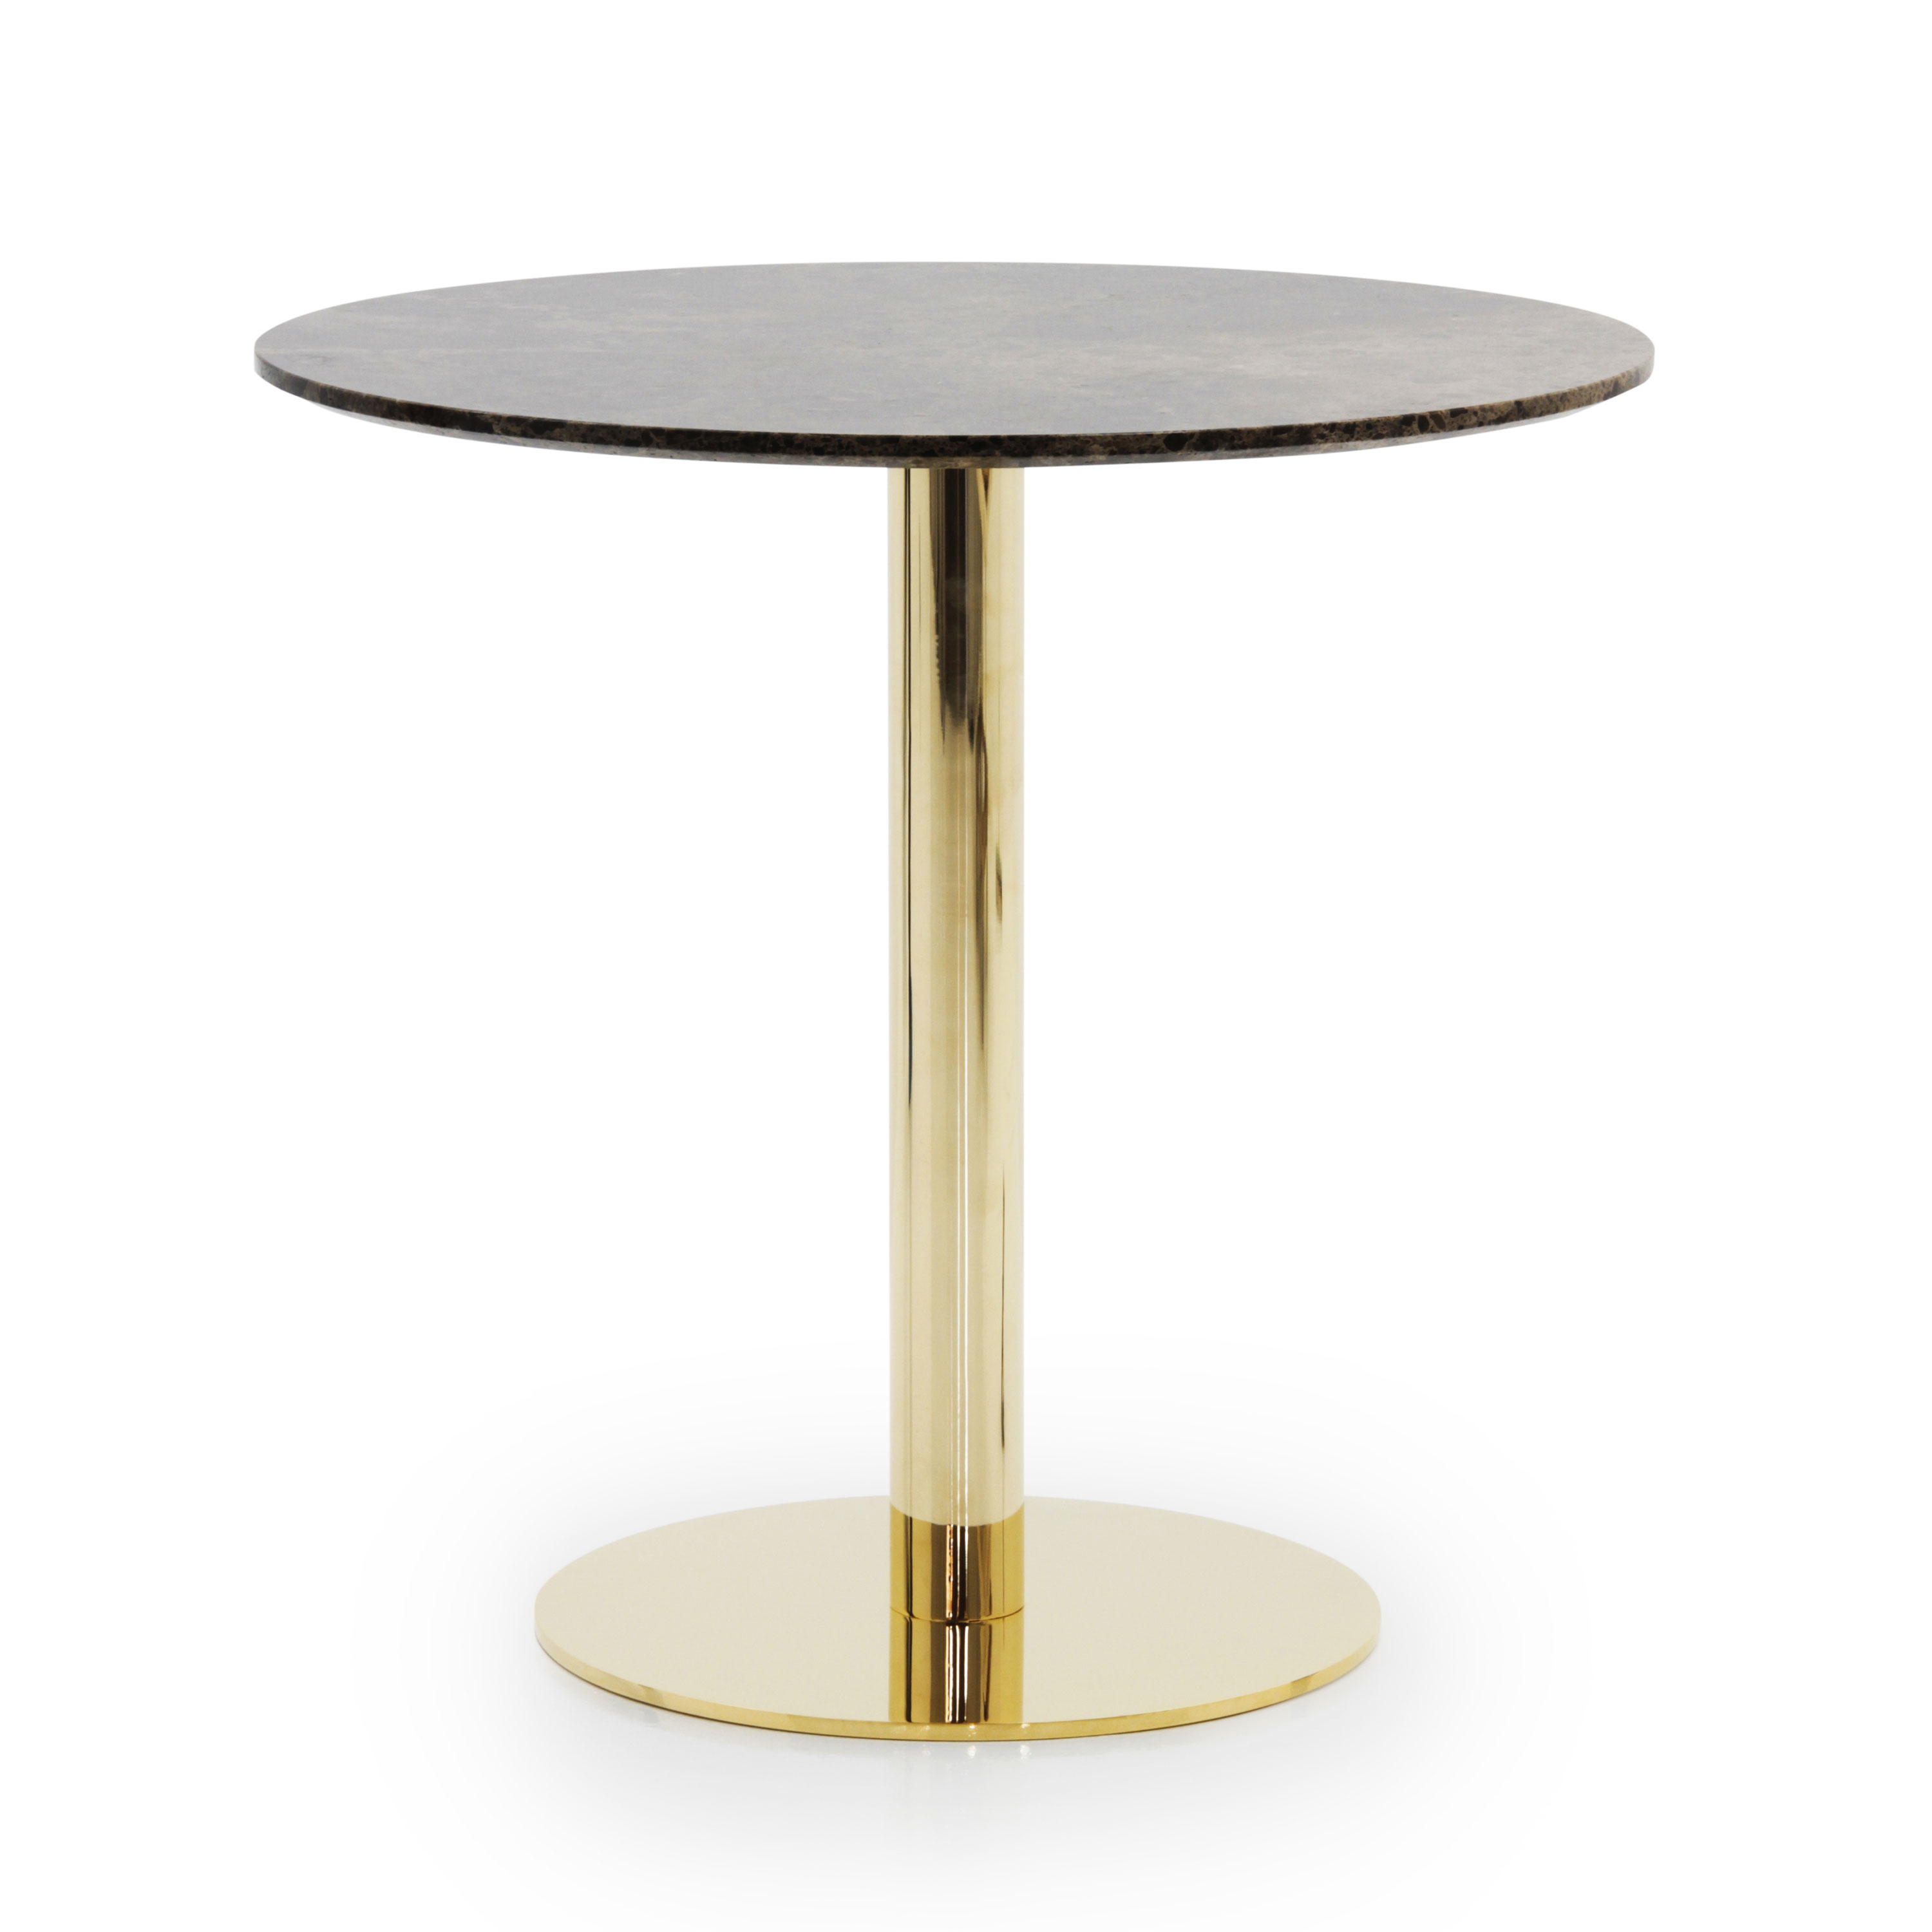 Surprising Modern Style Marble Top Table Precious Sevensedie Caraccident5 Cool Chair Designs And Ideas Caraccident5Info